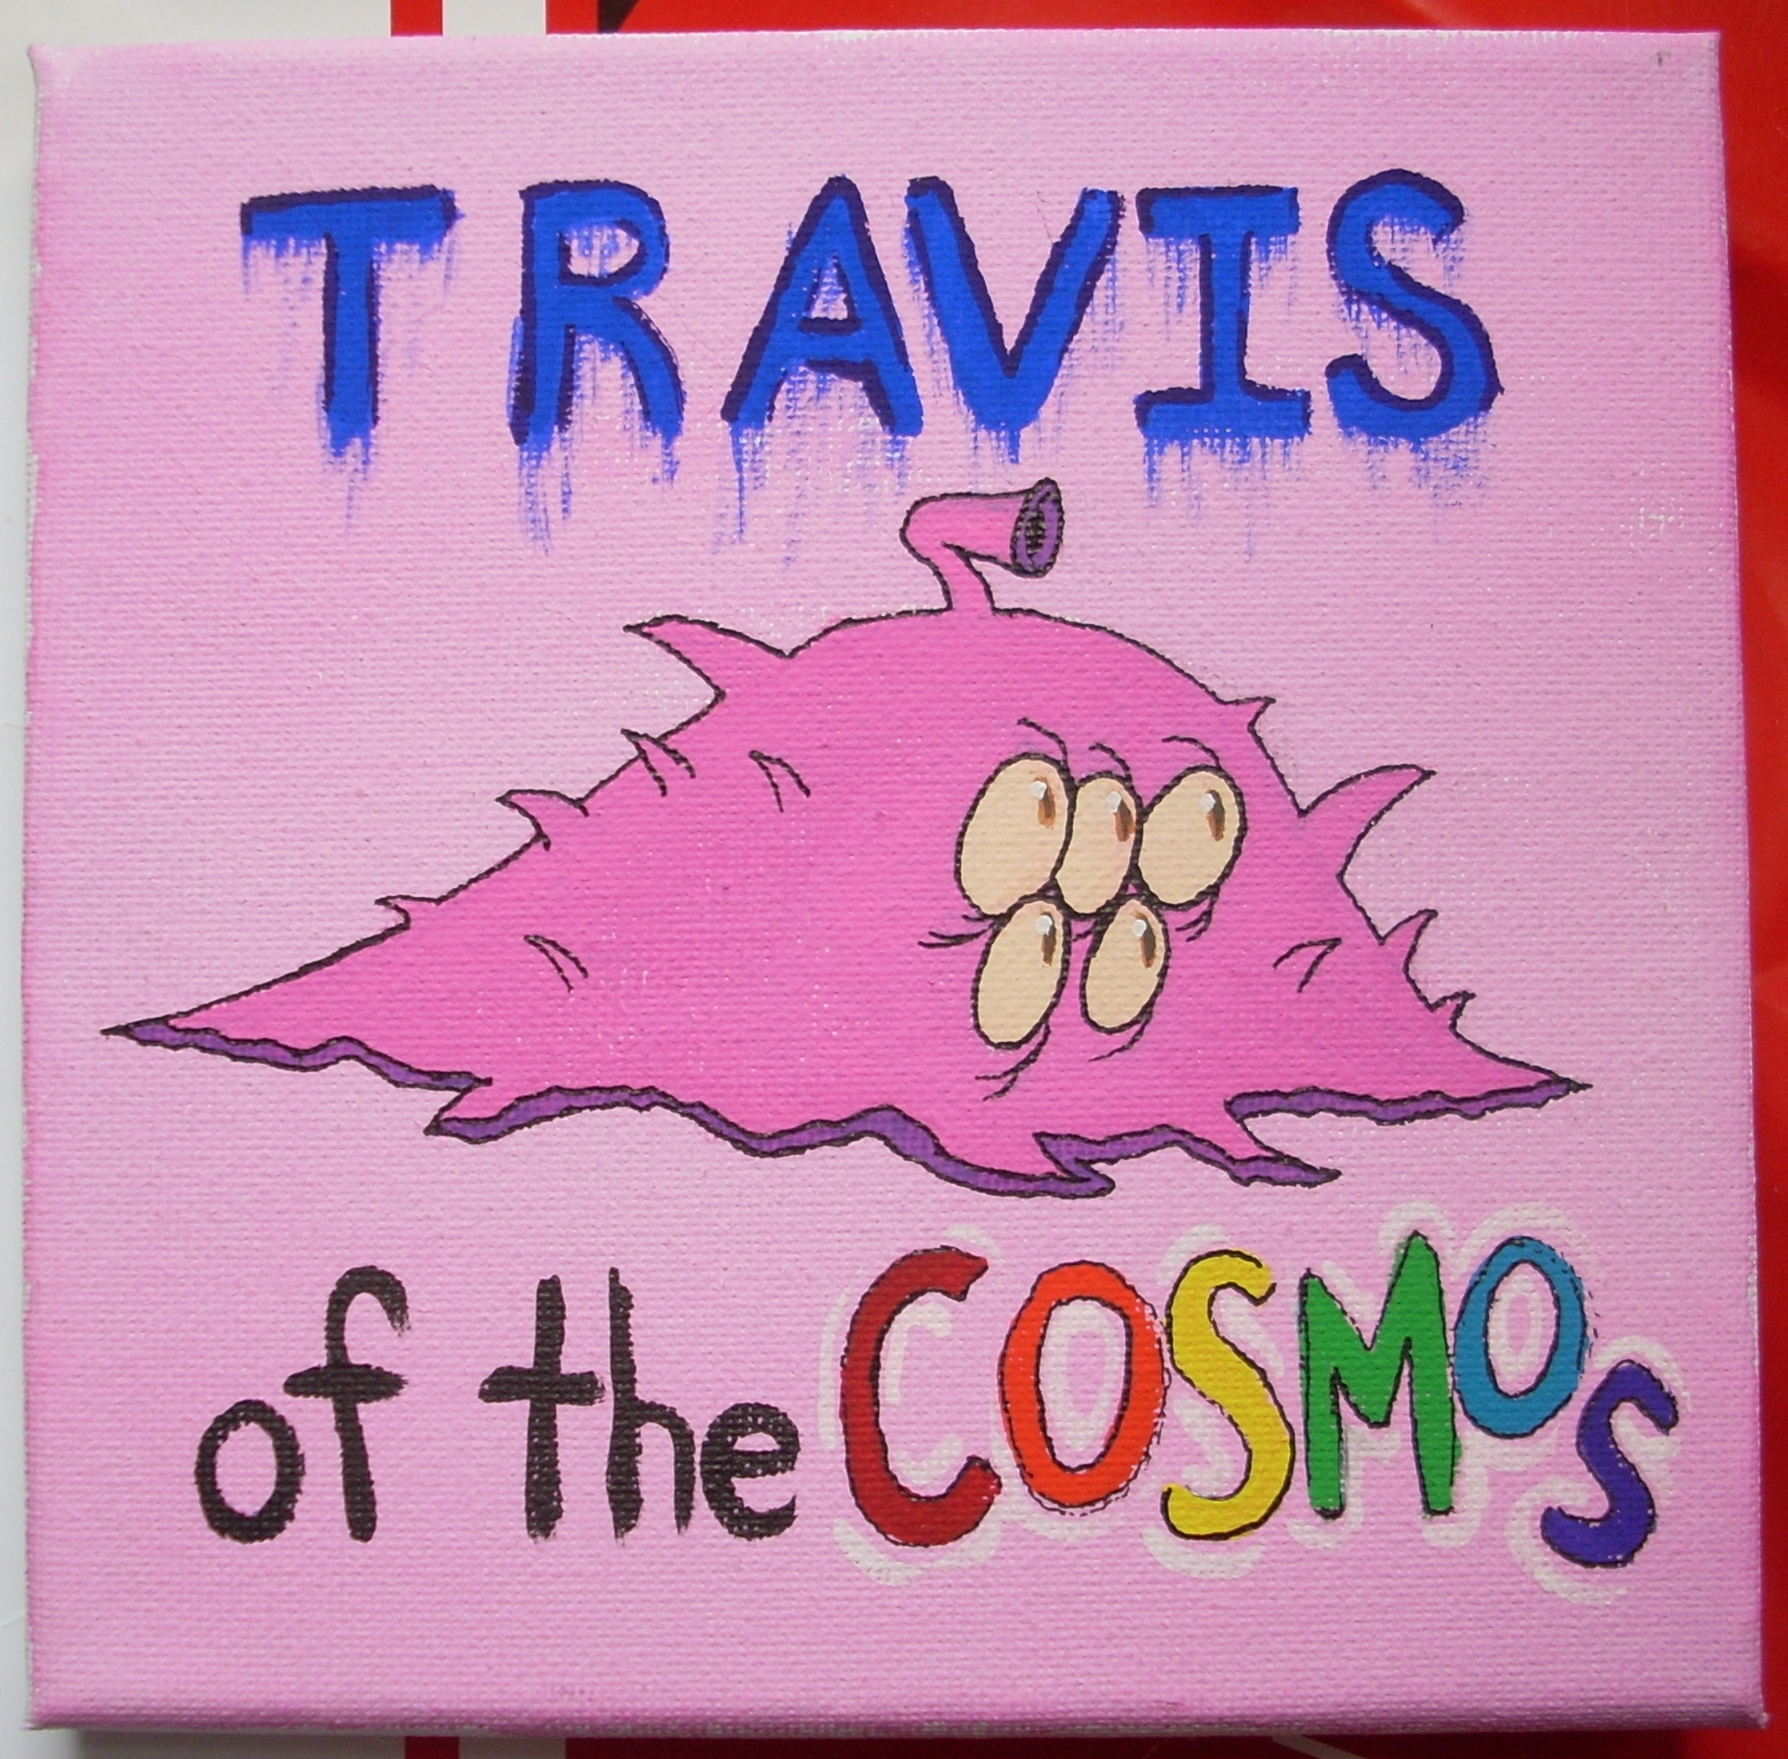 Travis of the Cosmos